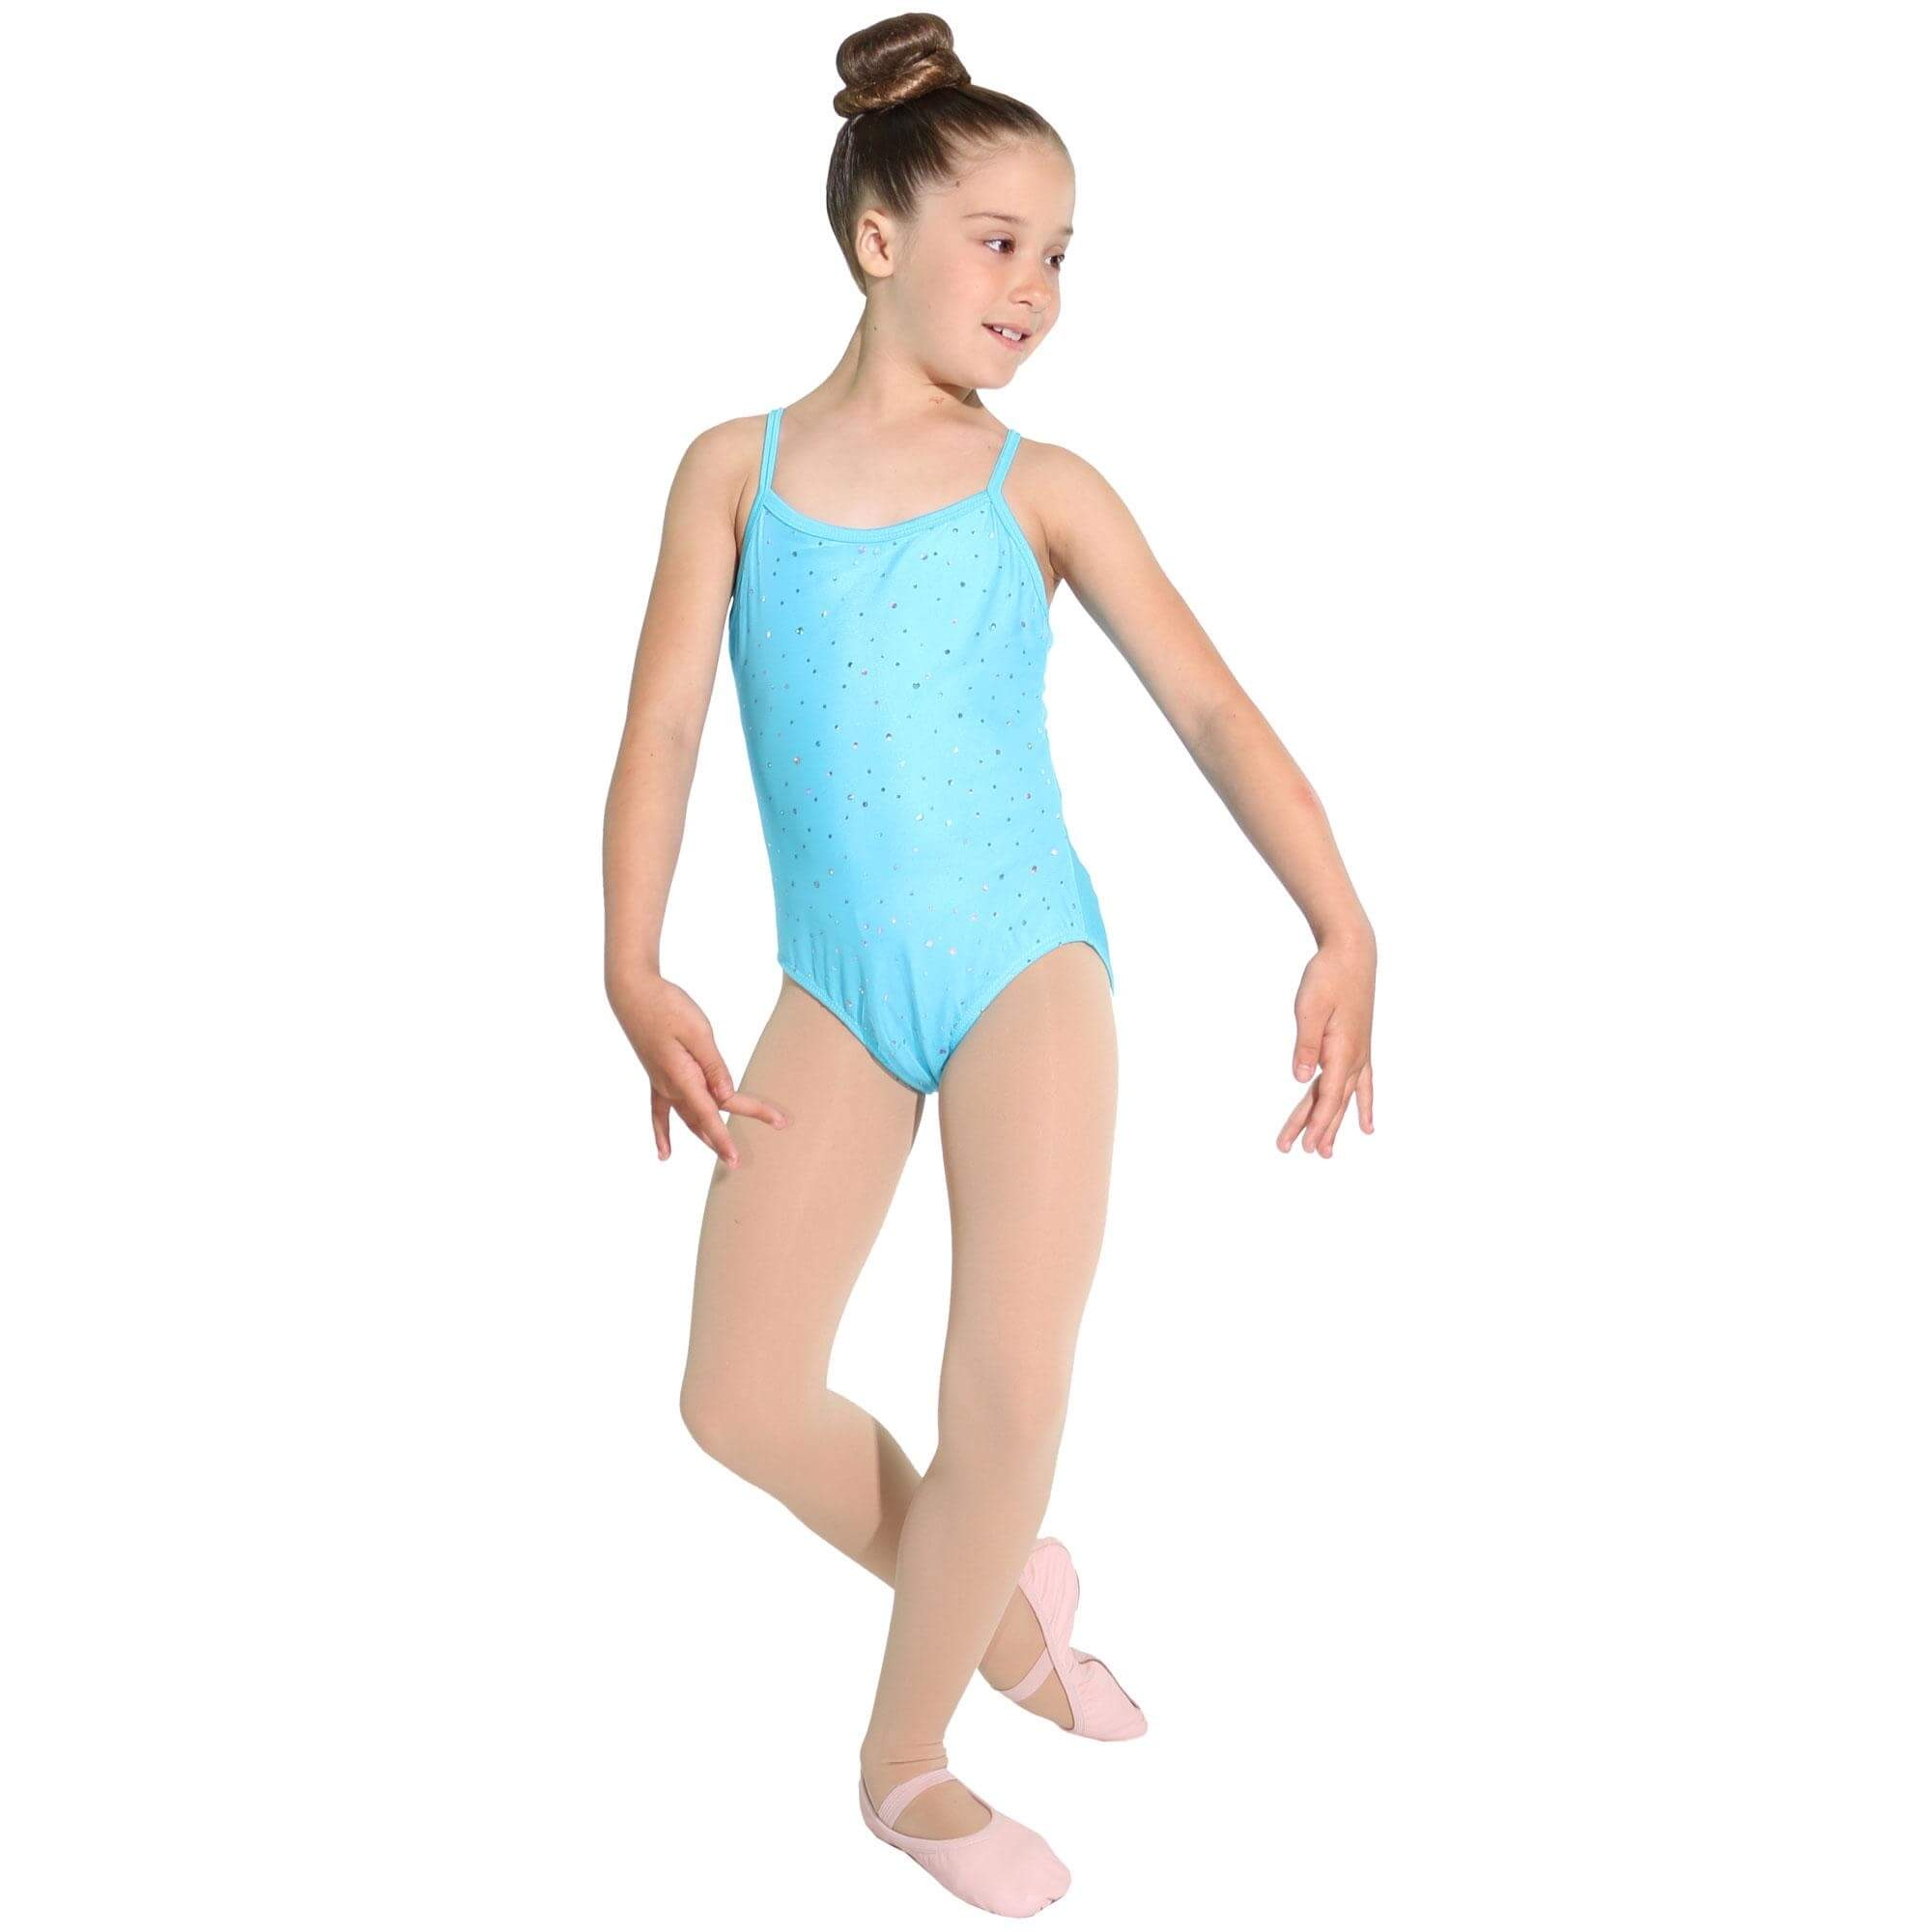 Reflectionz Sparkle Leotard - Click Image to Close